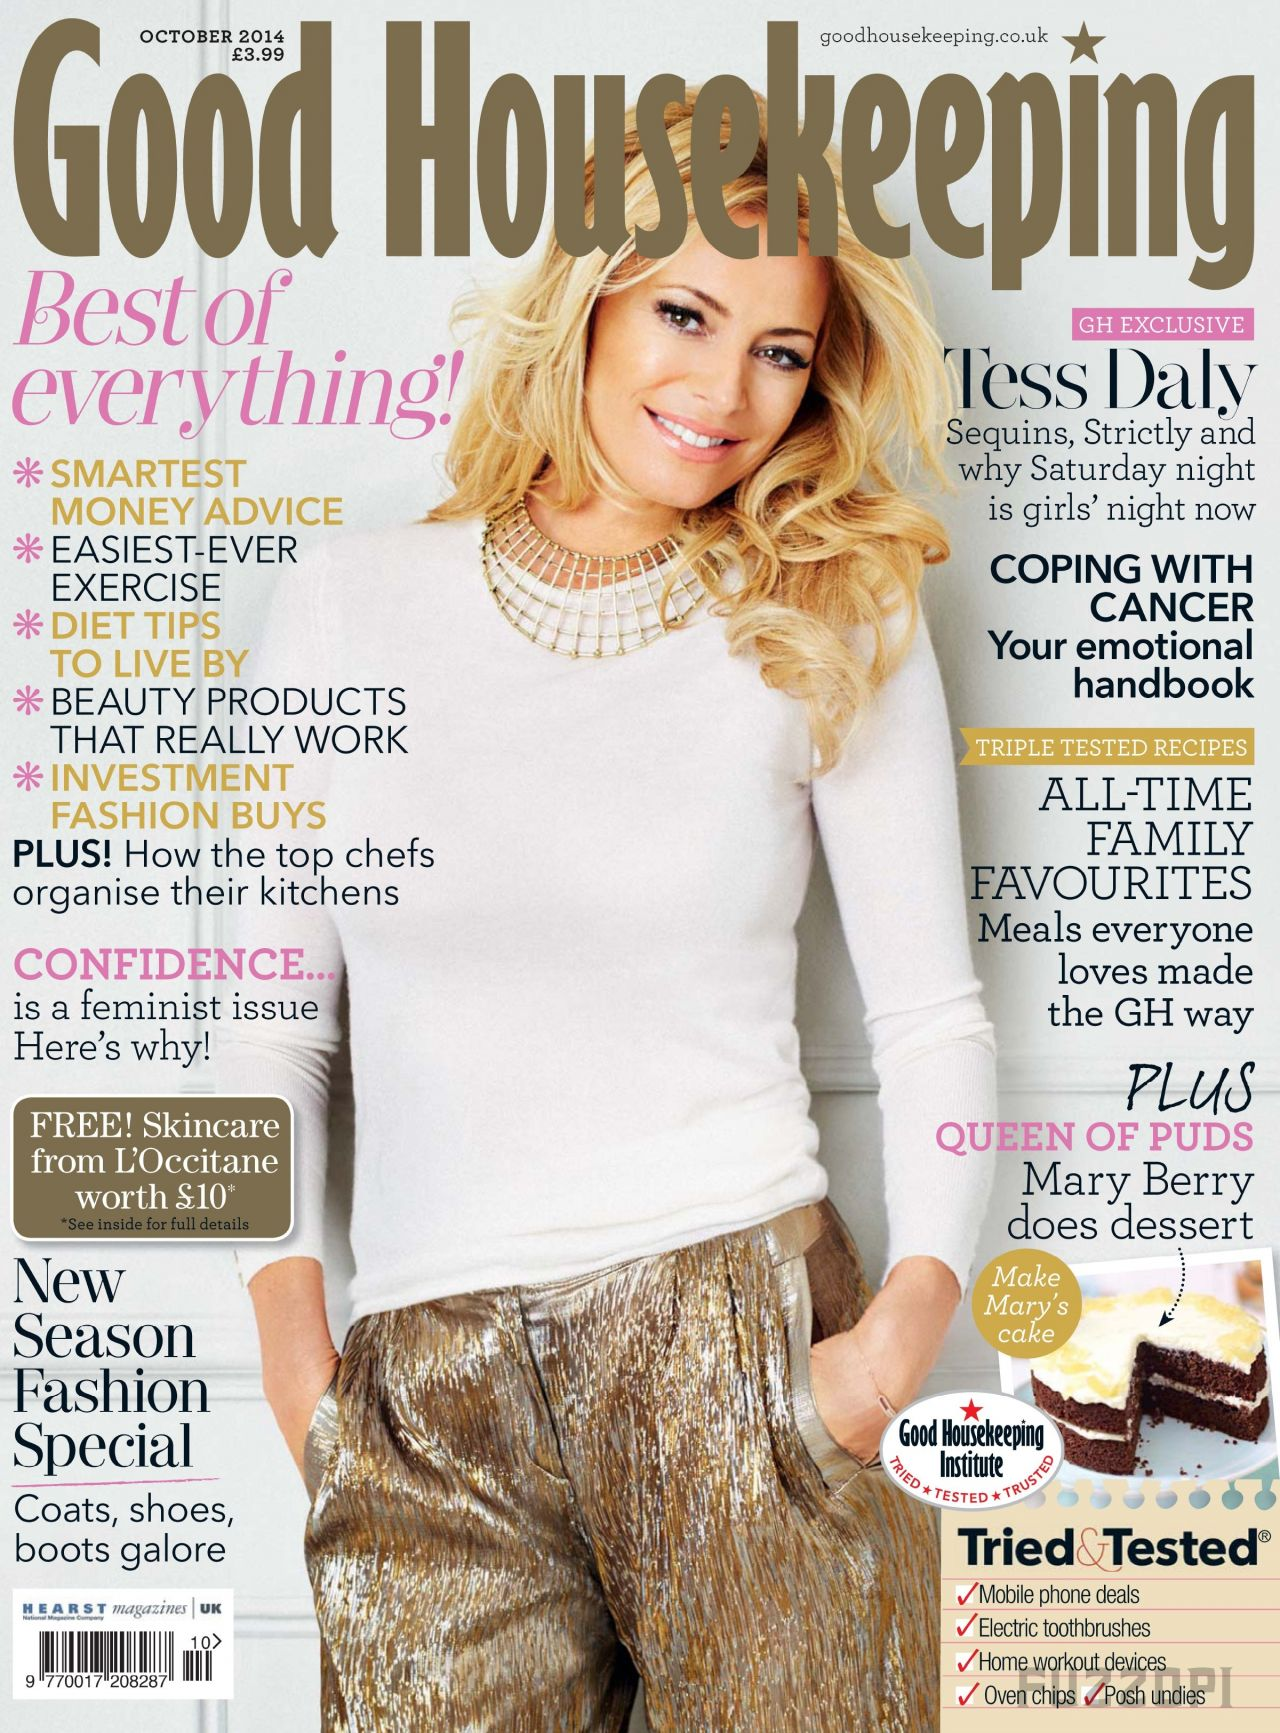 Tess Daly - Good Housekeeping Magazine (UK) - October 2014 Cover